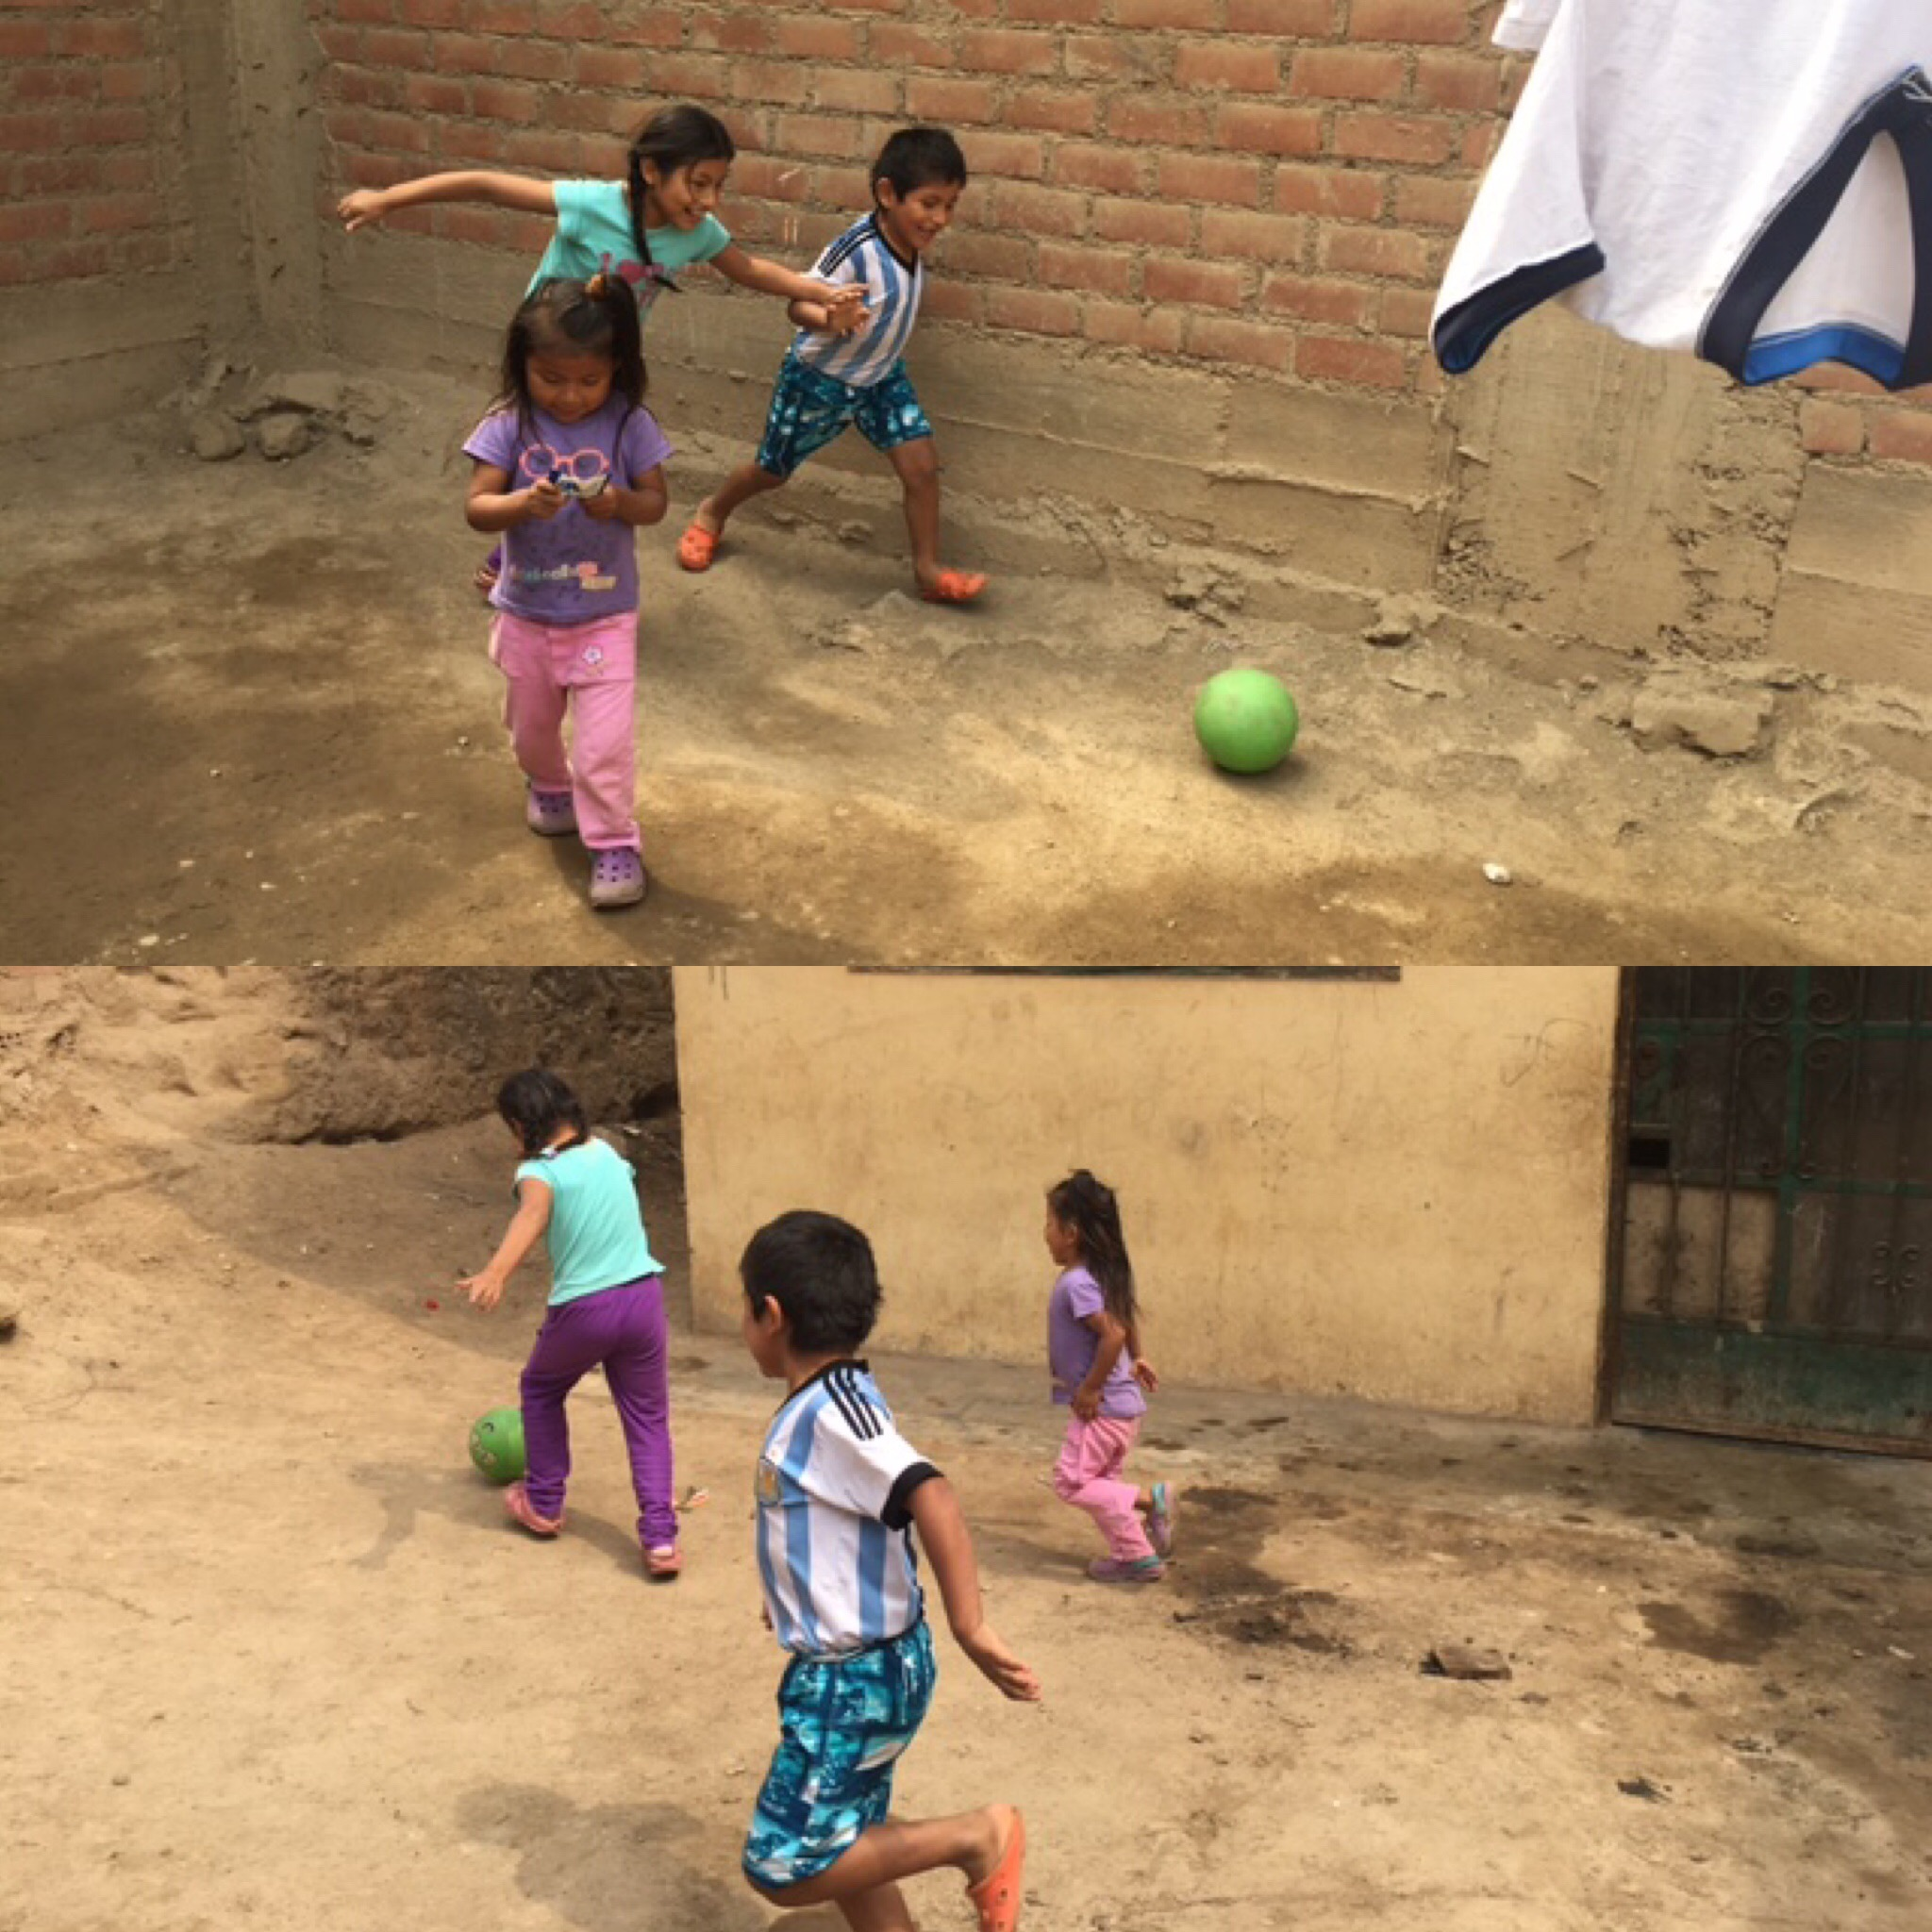 Julieth plays soccer with her siblings.